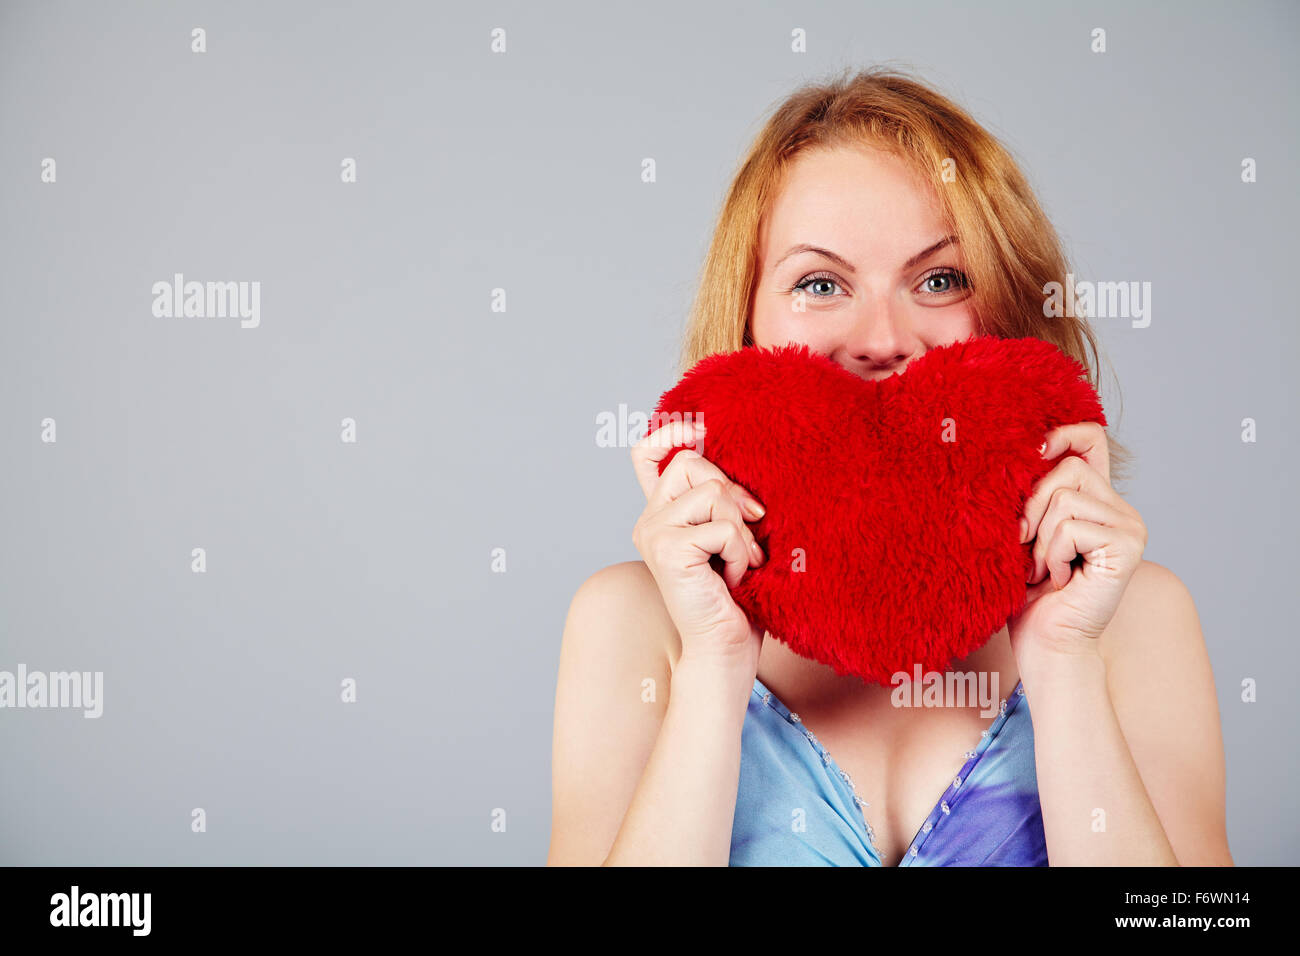 Femme en attente de Valentine's Day Photo Stock